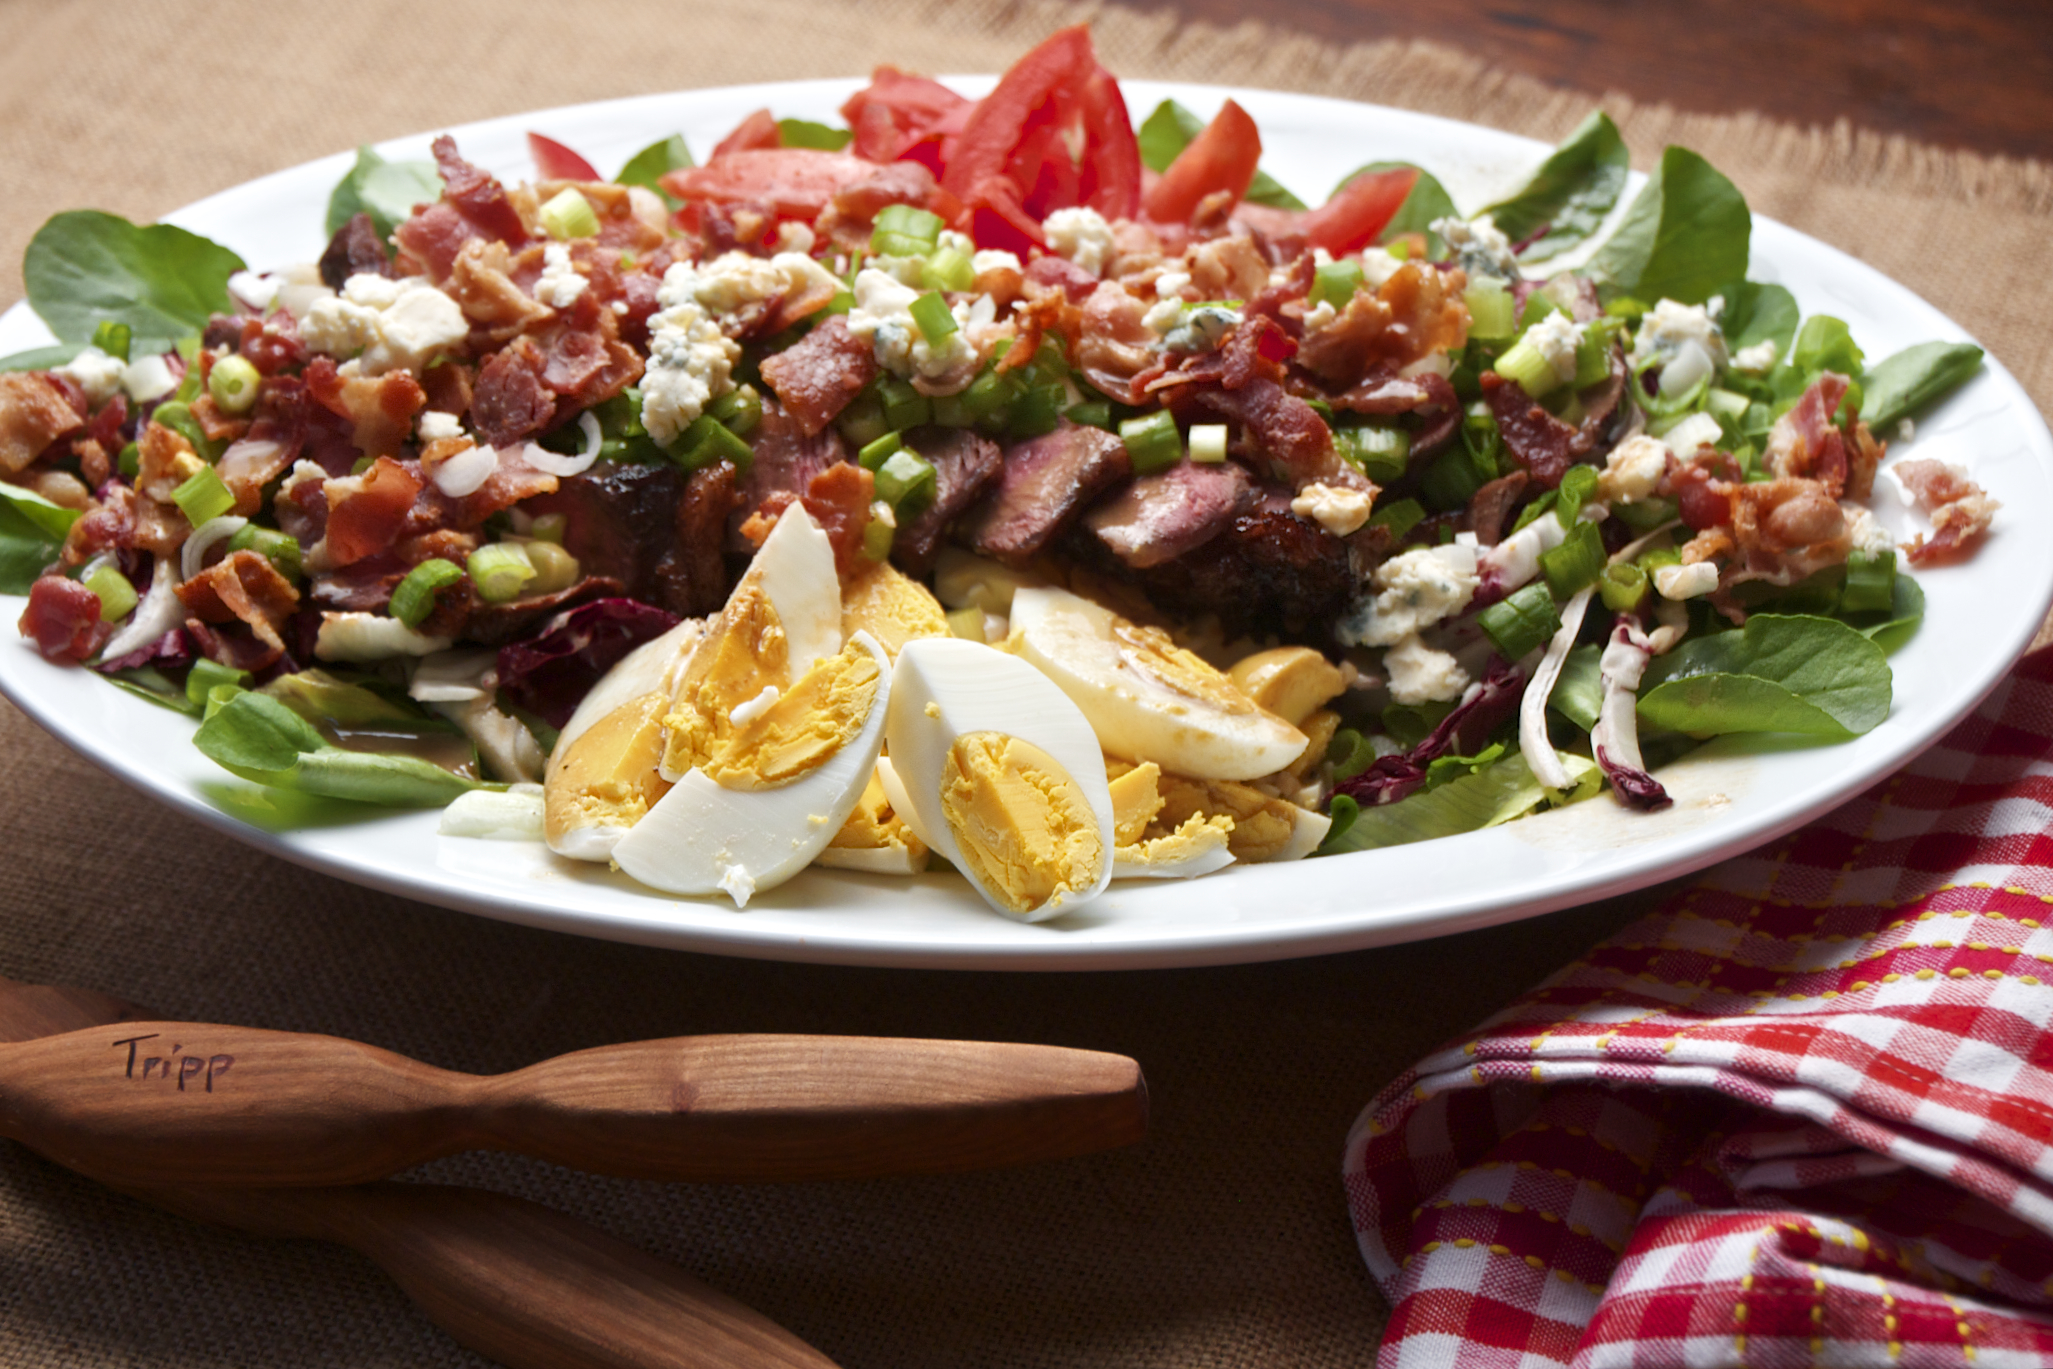 Cobb Style Steak Salad